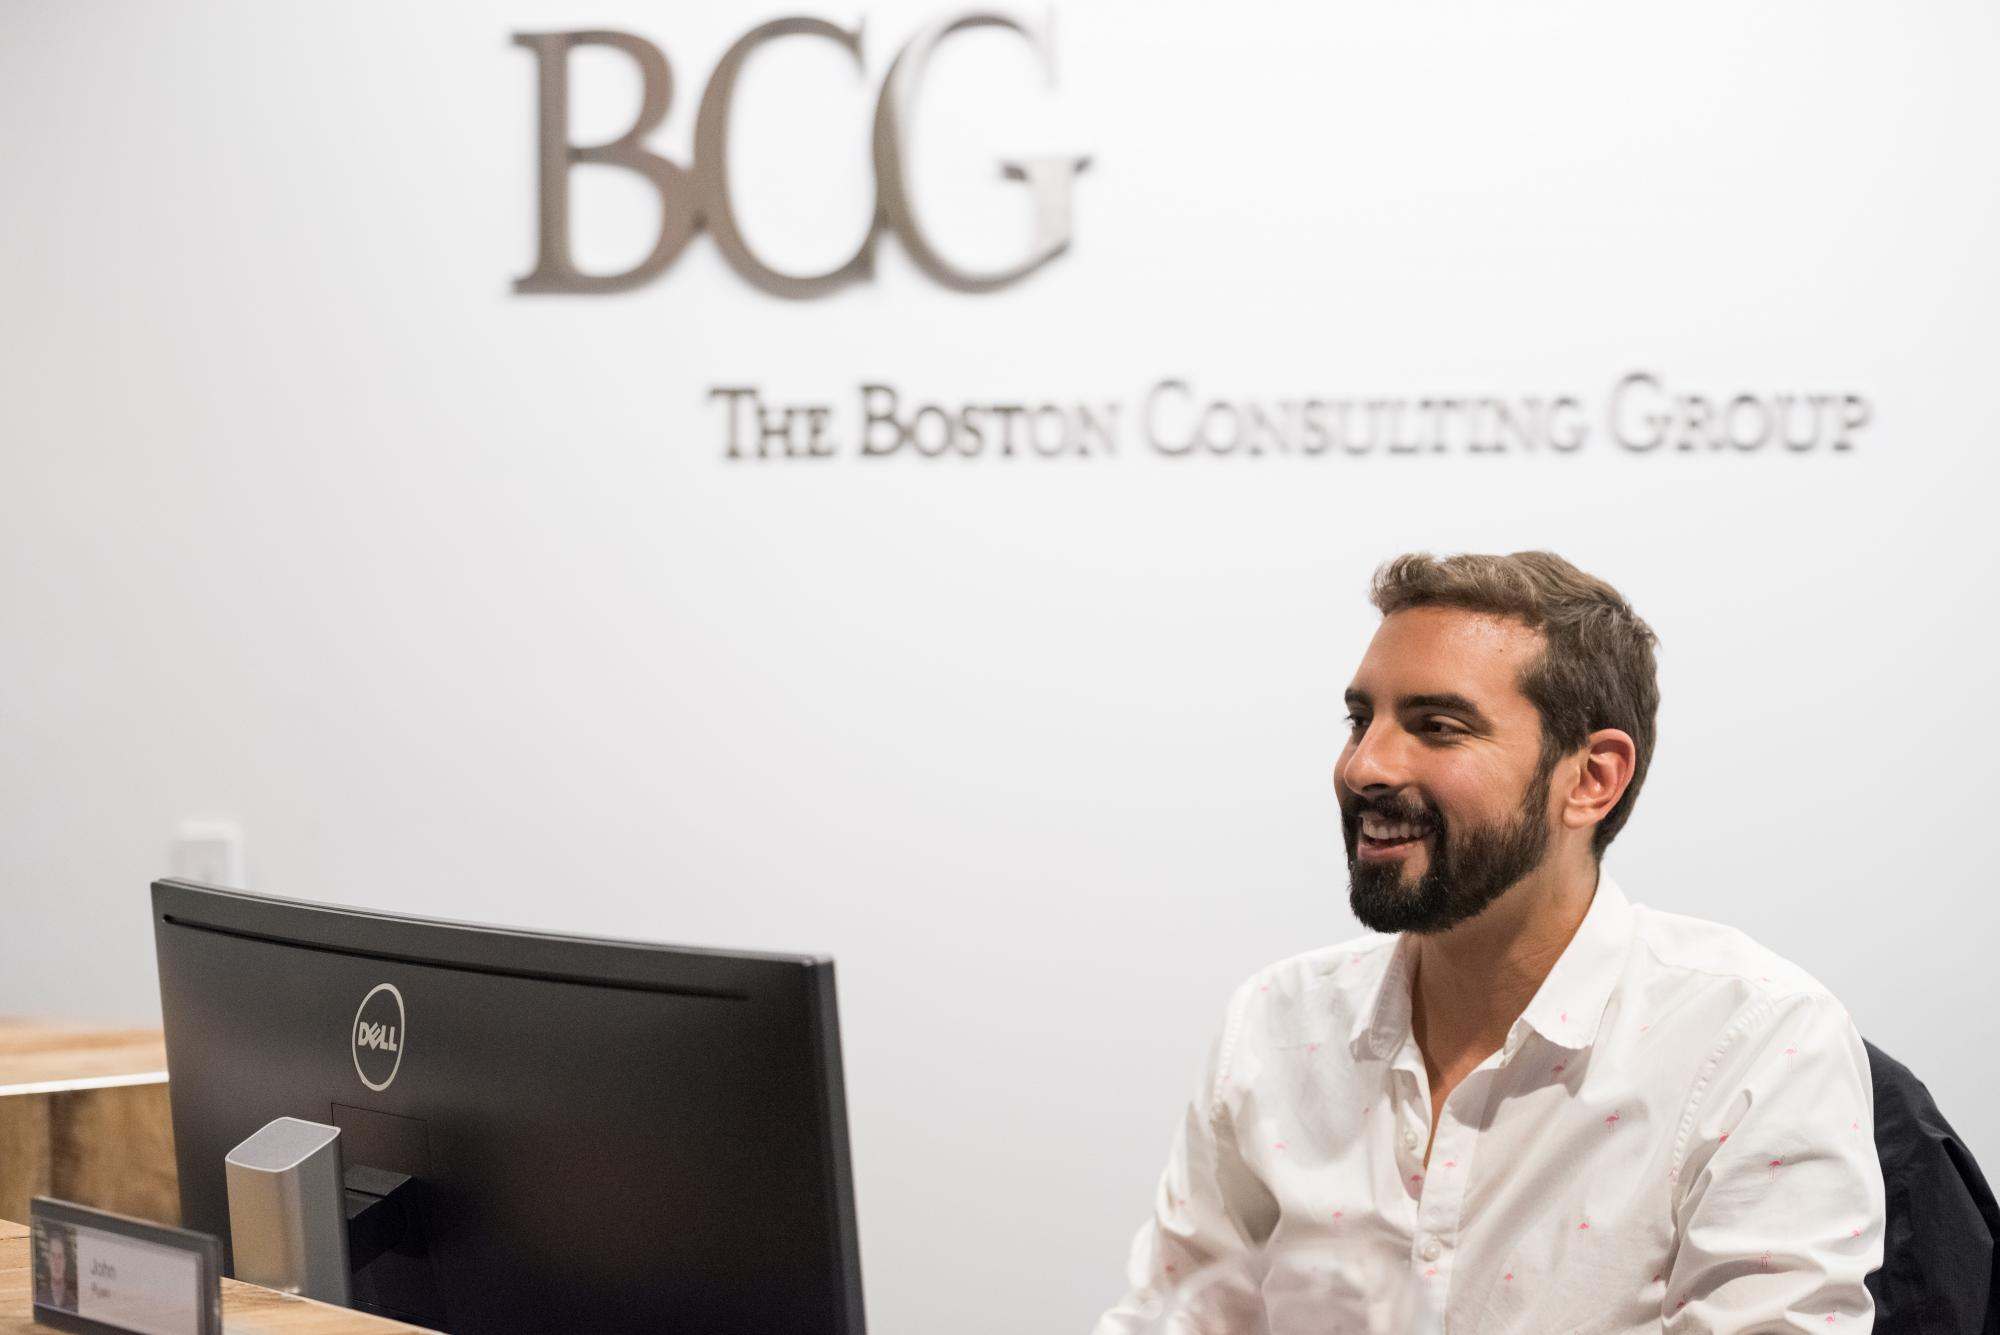 bcg_product_business_unit_culture_and_office_photos_in_boston_4.jpg